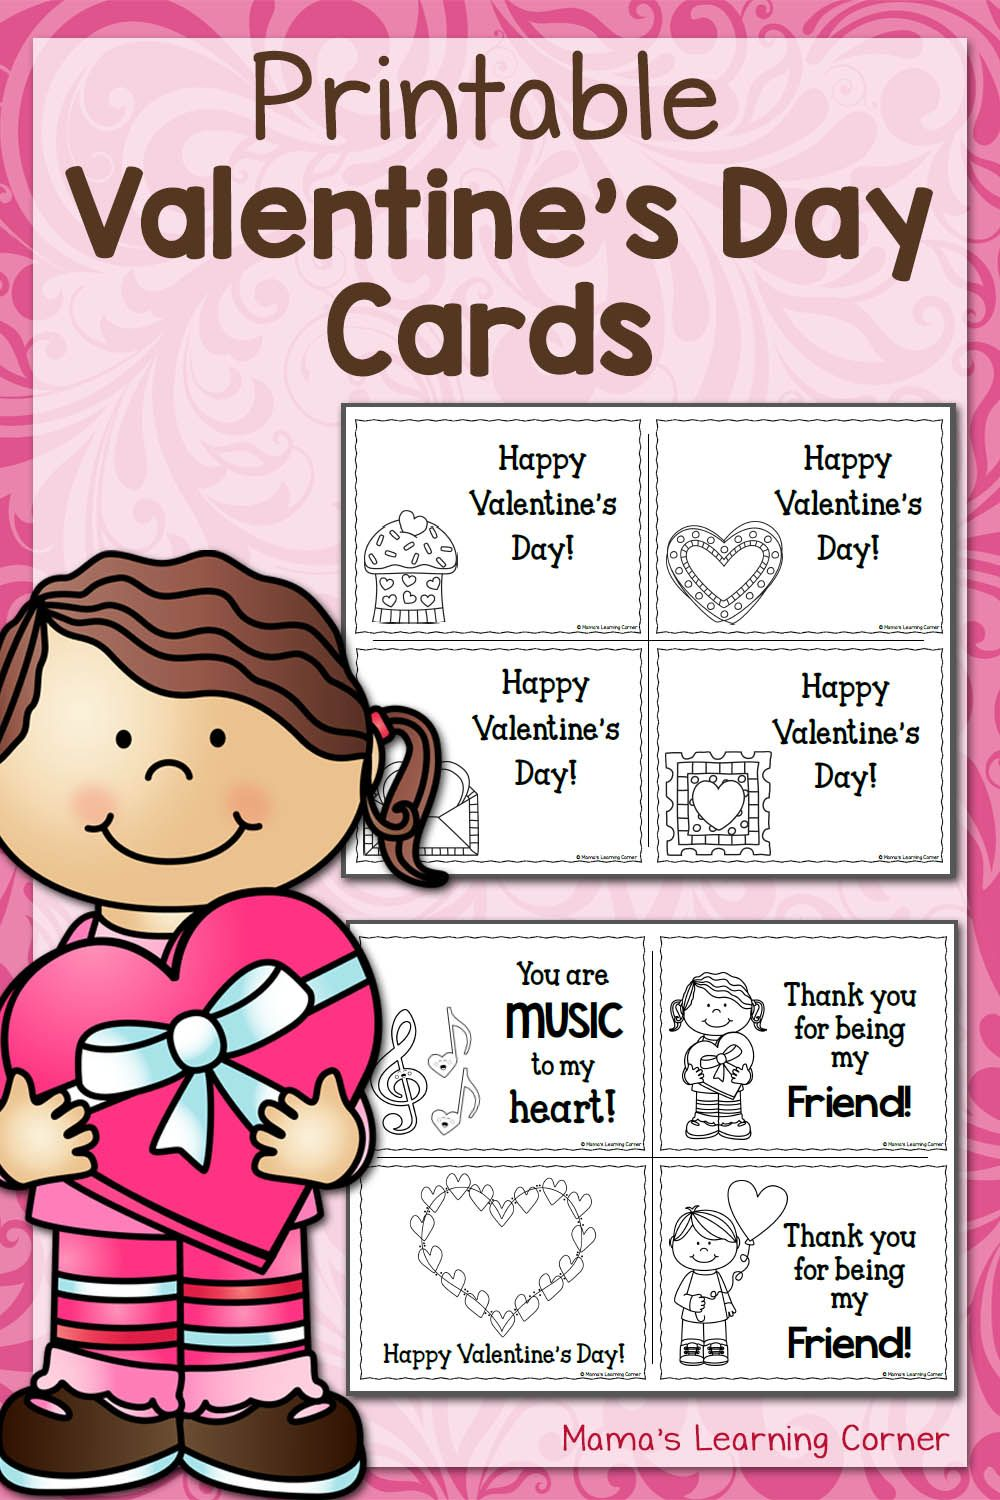 Printable Valentine S Day Cards Printable Valentines Day Cards Valentine Day Cards Valentines Printables Free